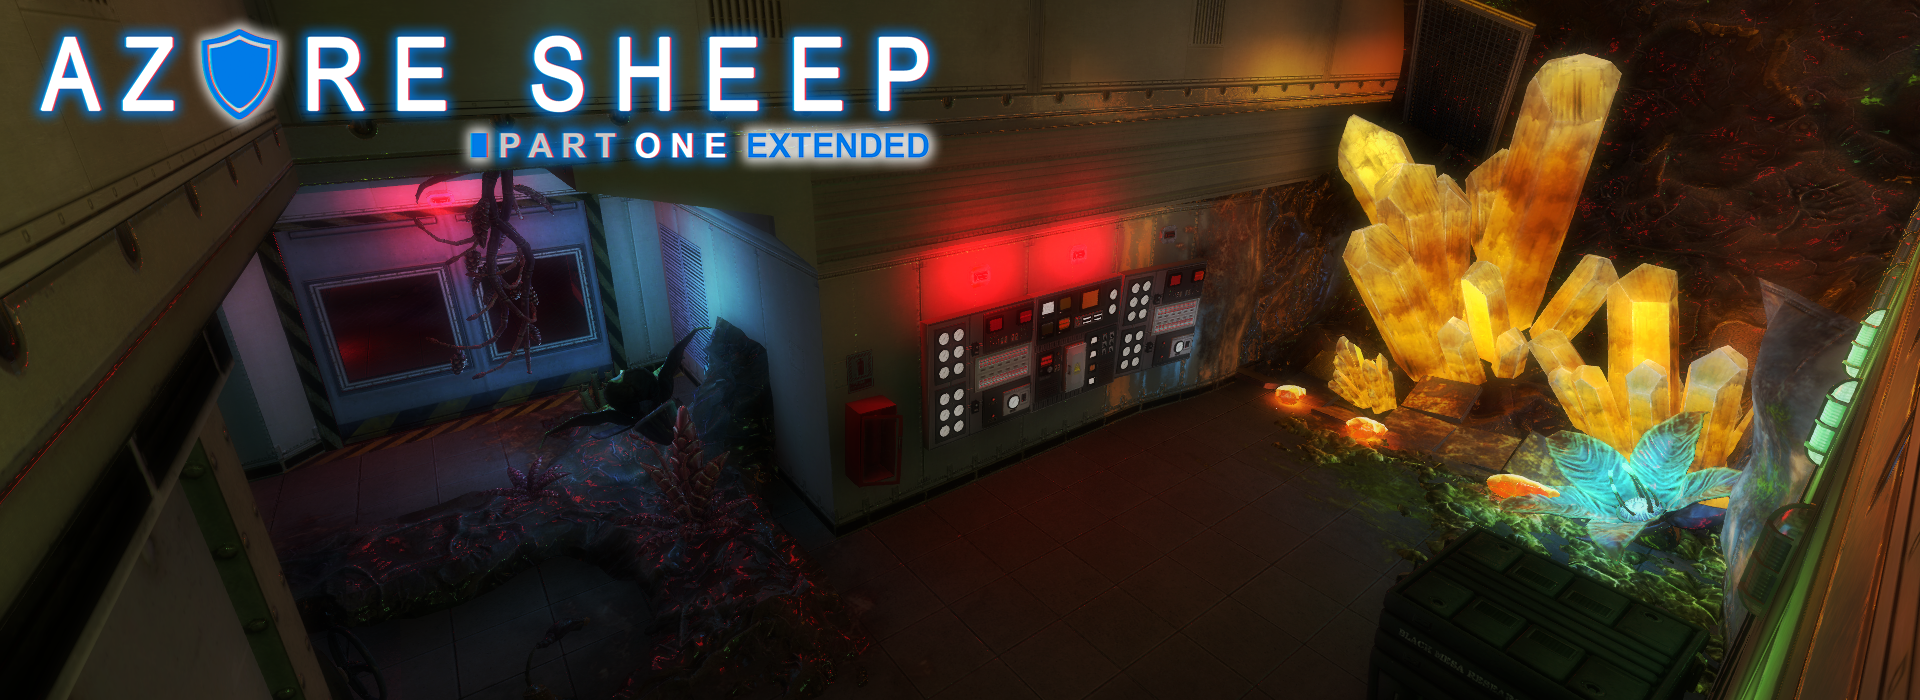 Azure Sheep: Part One Extended Release